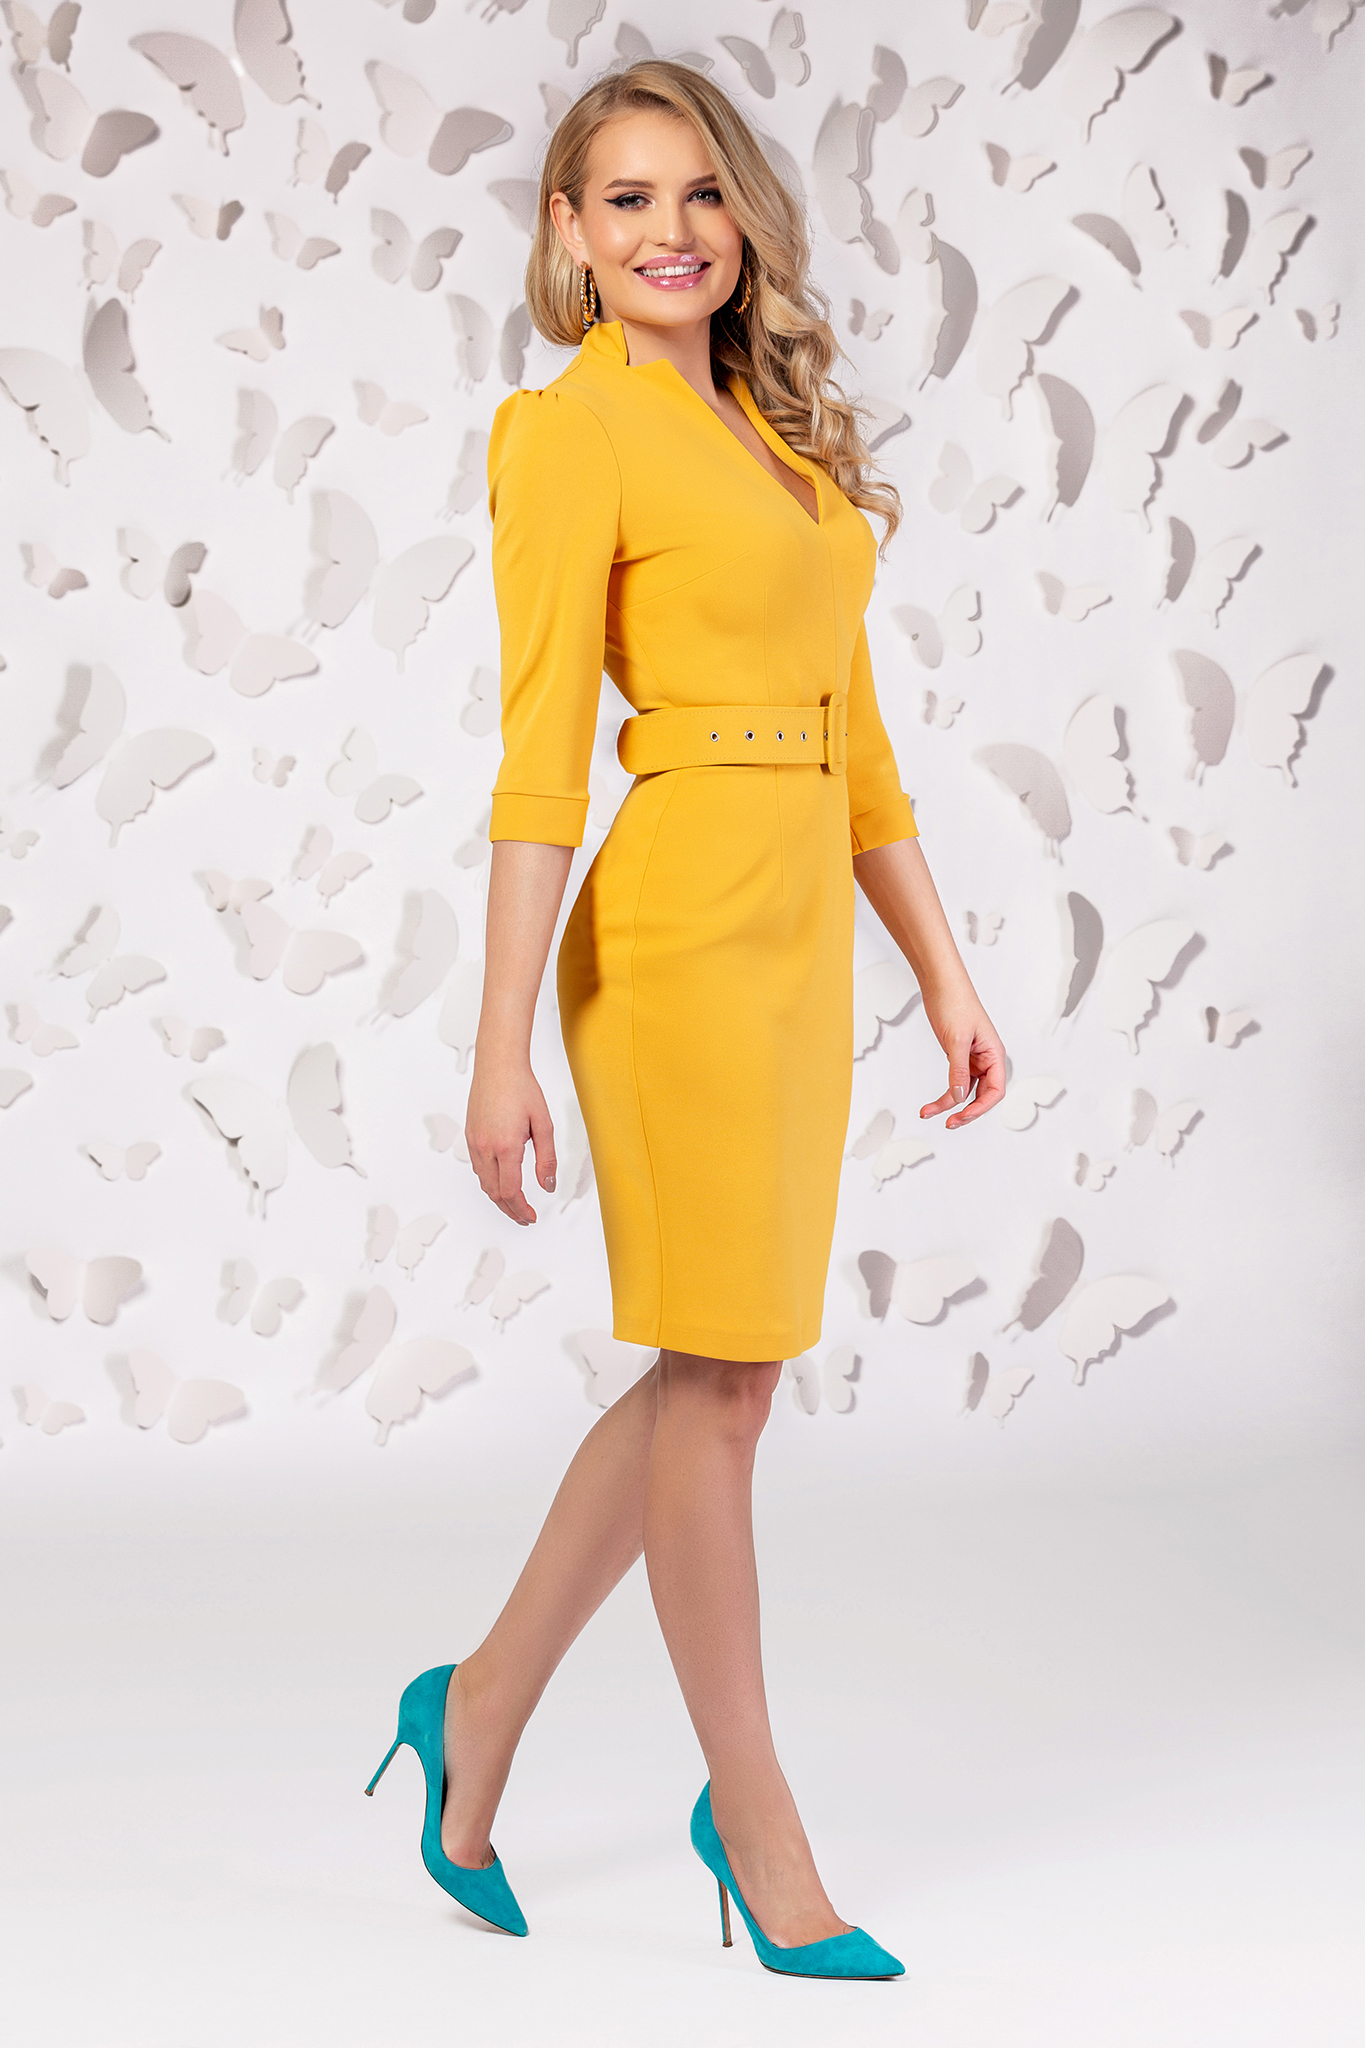 Dress yellow slightly elastic fabric with v-neckline accessorized with belt